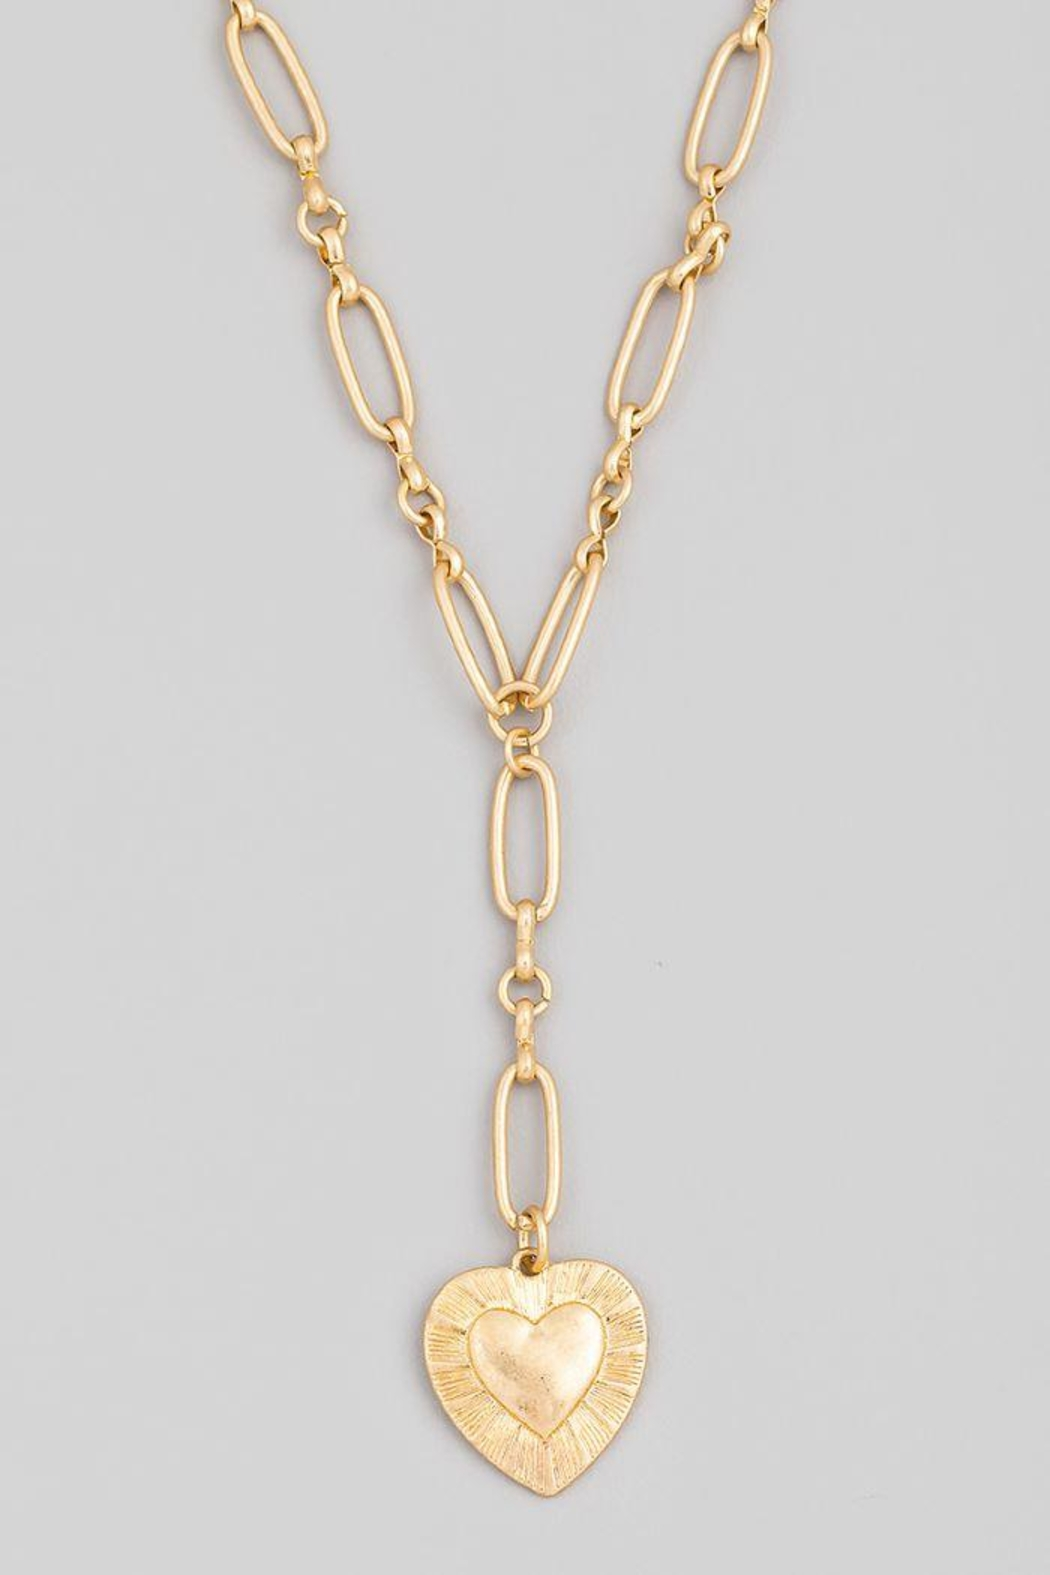 Fame Accessories Chain Link Heart Pendant Necklace - Main Image